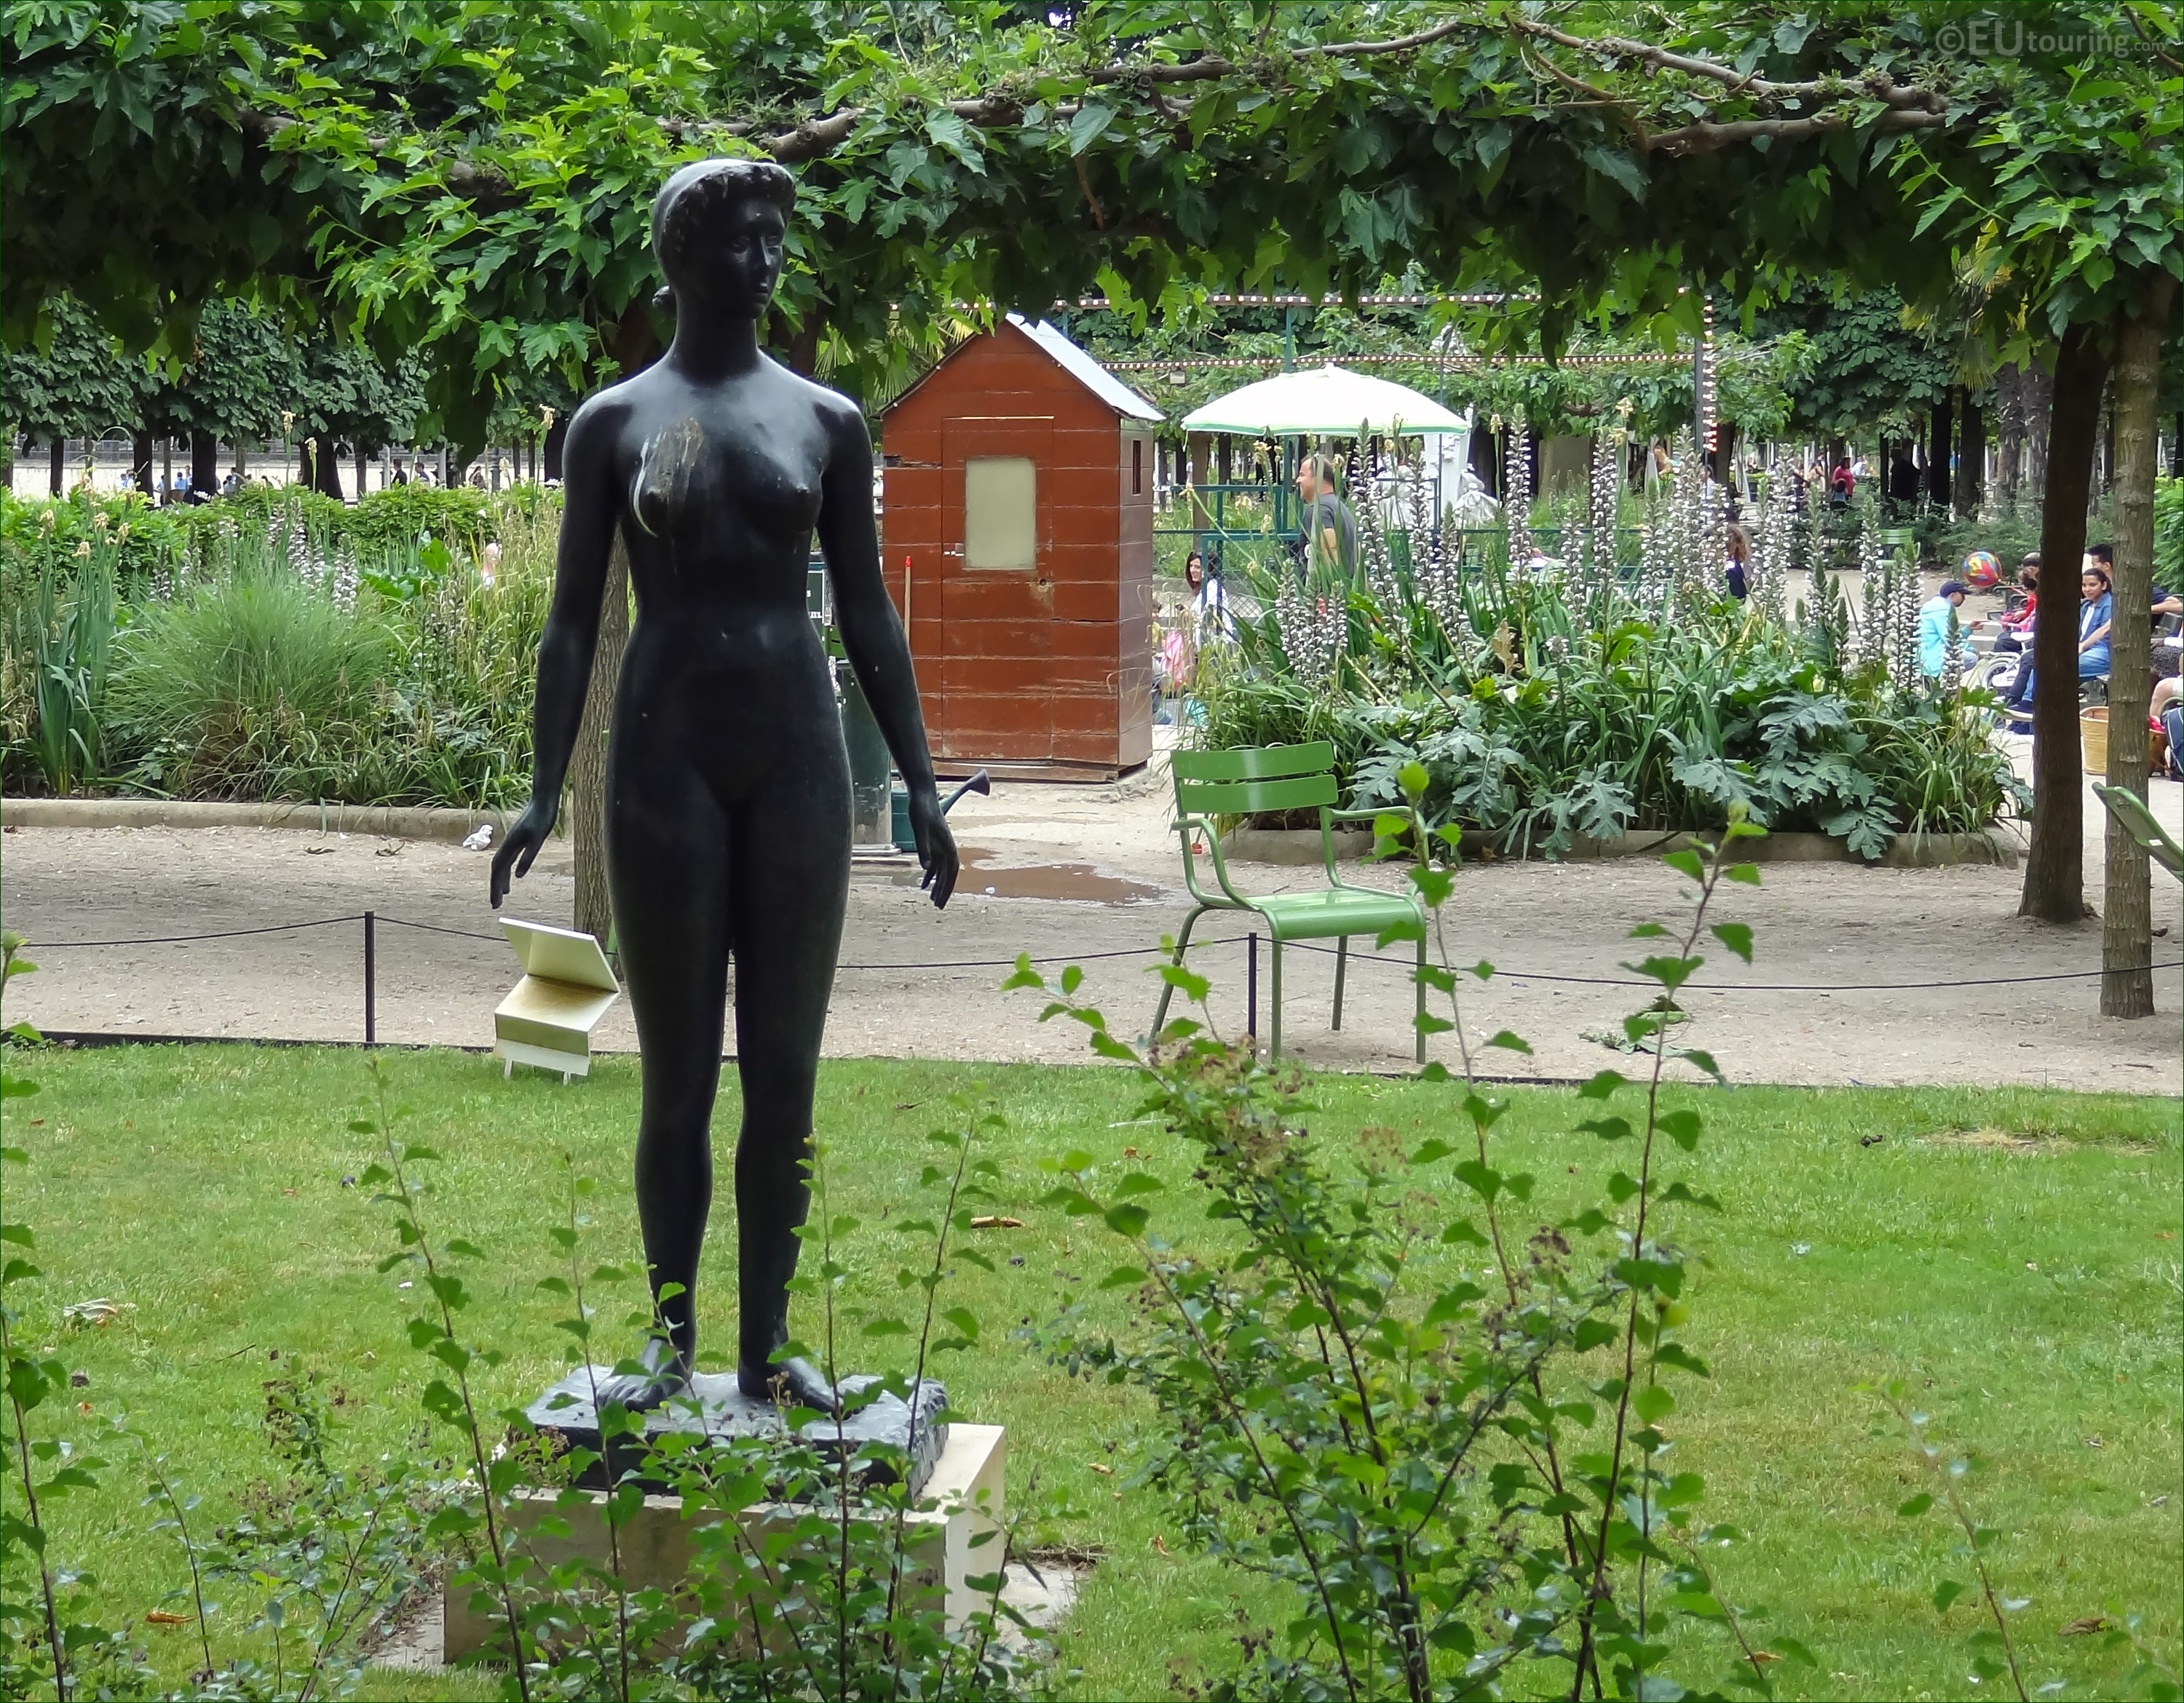 Photos of jeanette statue in jardin des tuileries page 667 - Statues jardin des tuileries ...